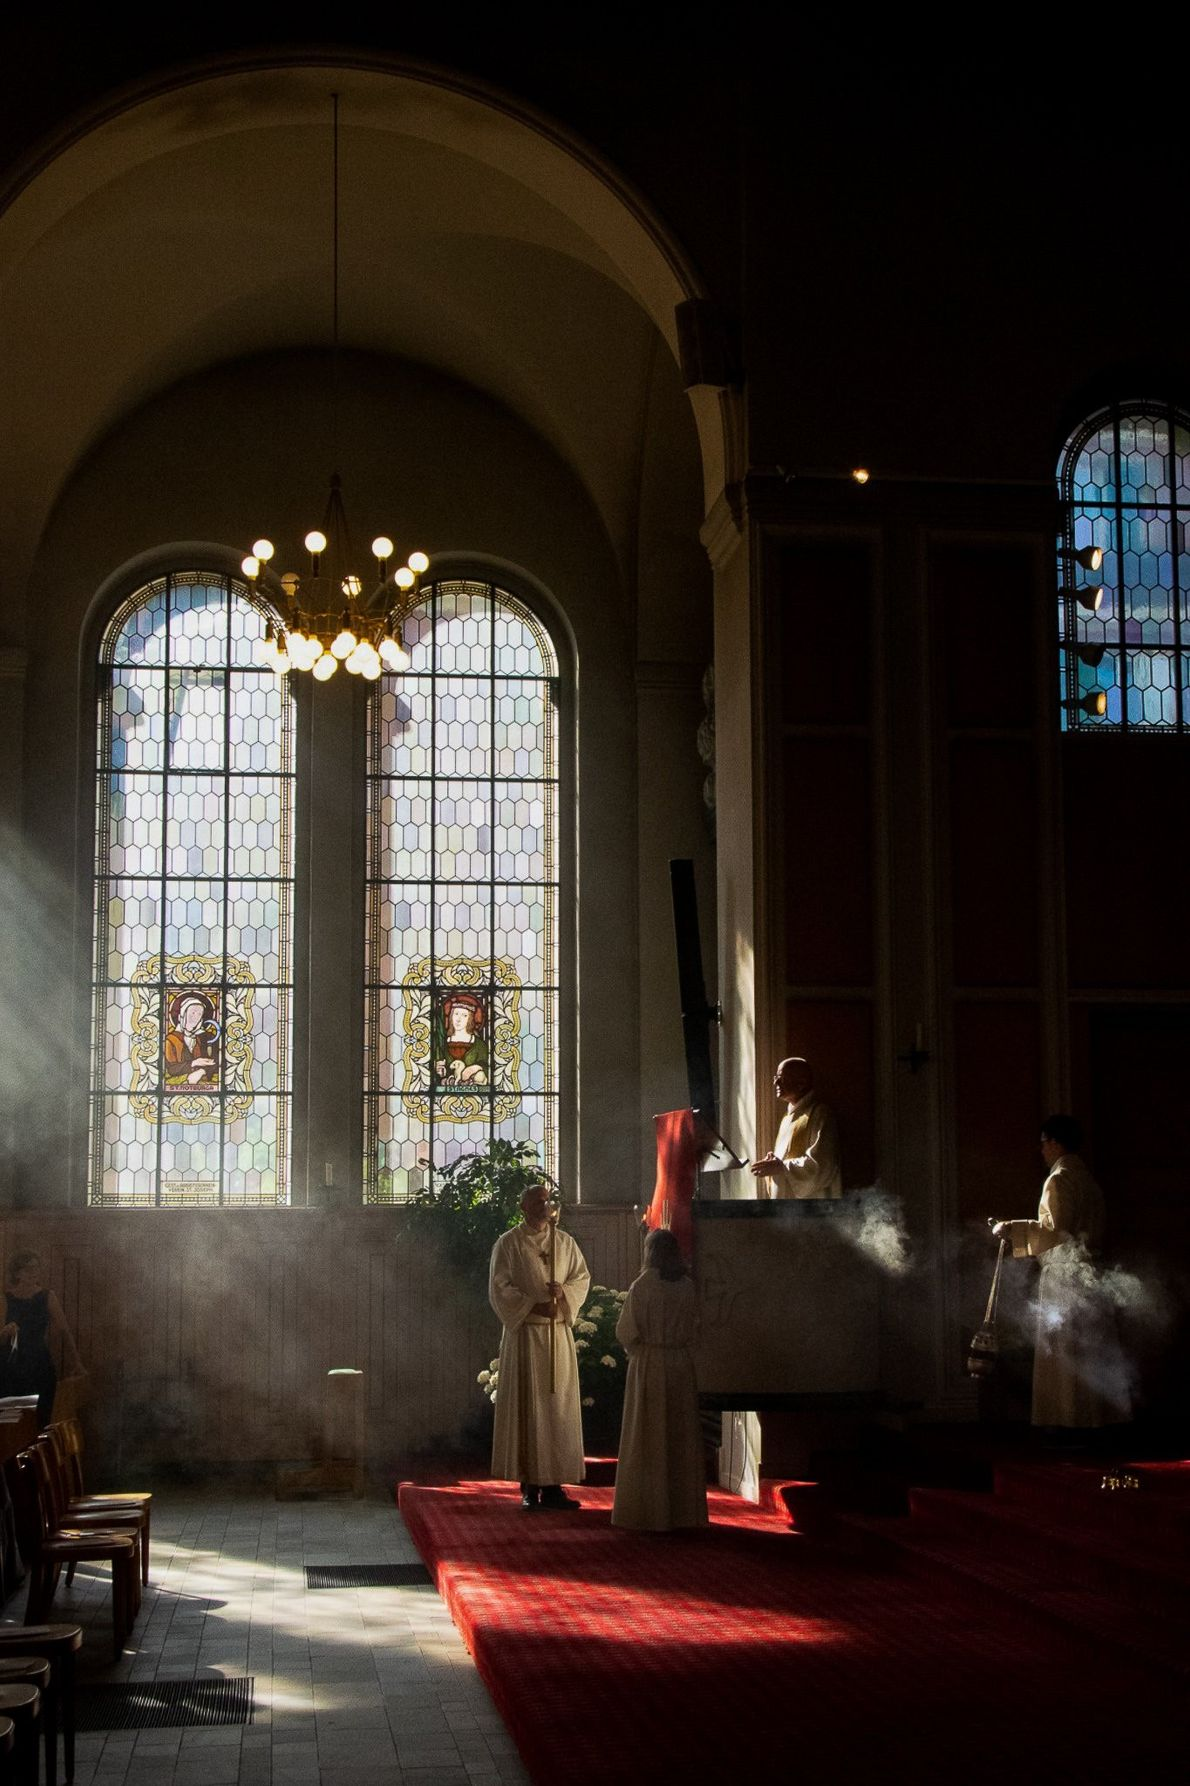 Your Shot photographer Agnieszka Skalska documented this scene during a confirmation ceremoney in the Swiss Church. ...